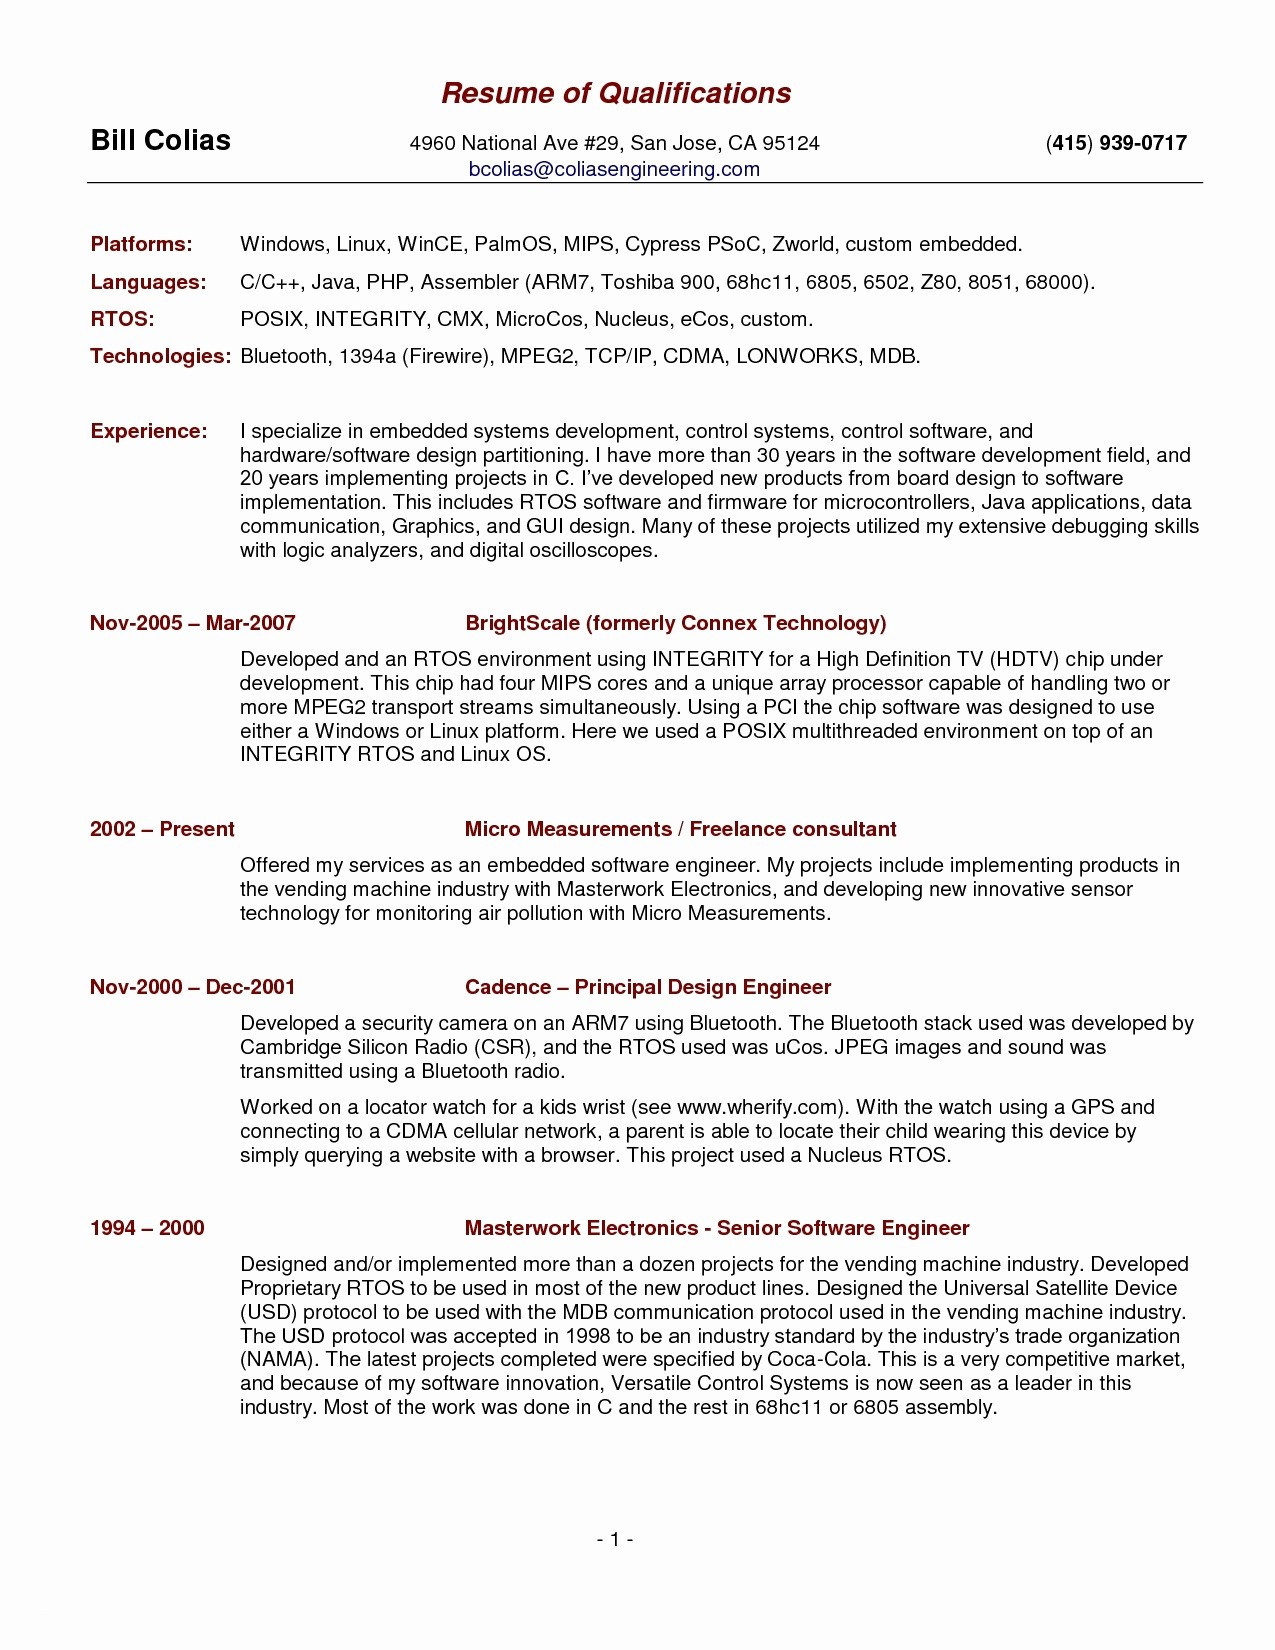 Service Industry Resume - What Does A Professional Resume Look Like Sample Pdf New Resume Tem